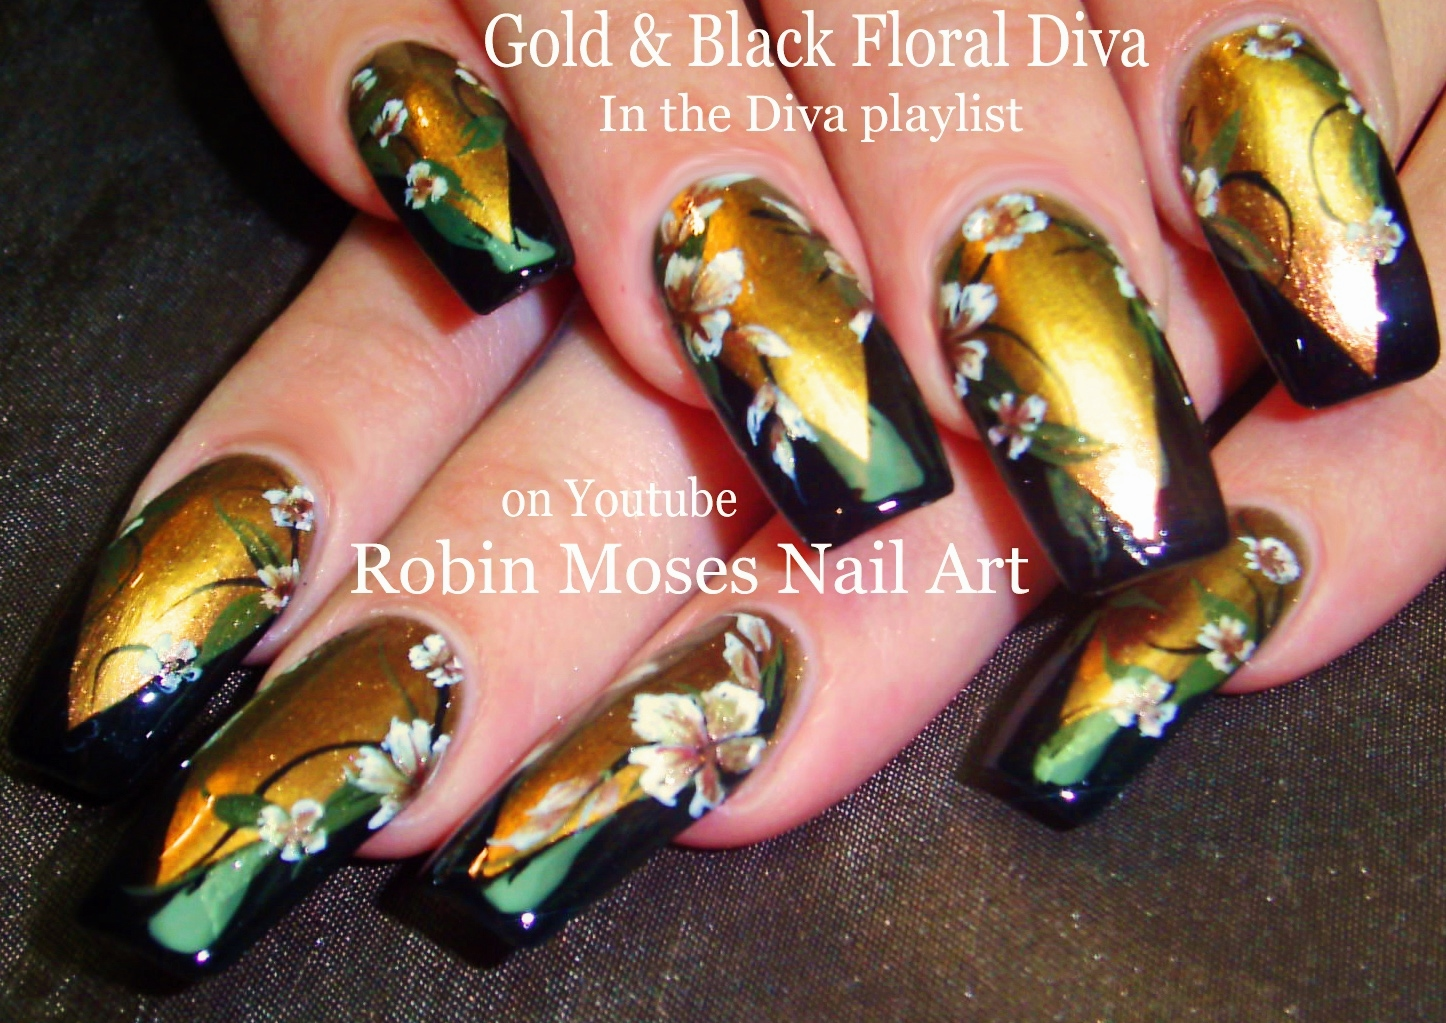 Robin Moses Nail Art Dark Matte Red Nails With Henna And Sponge